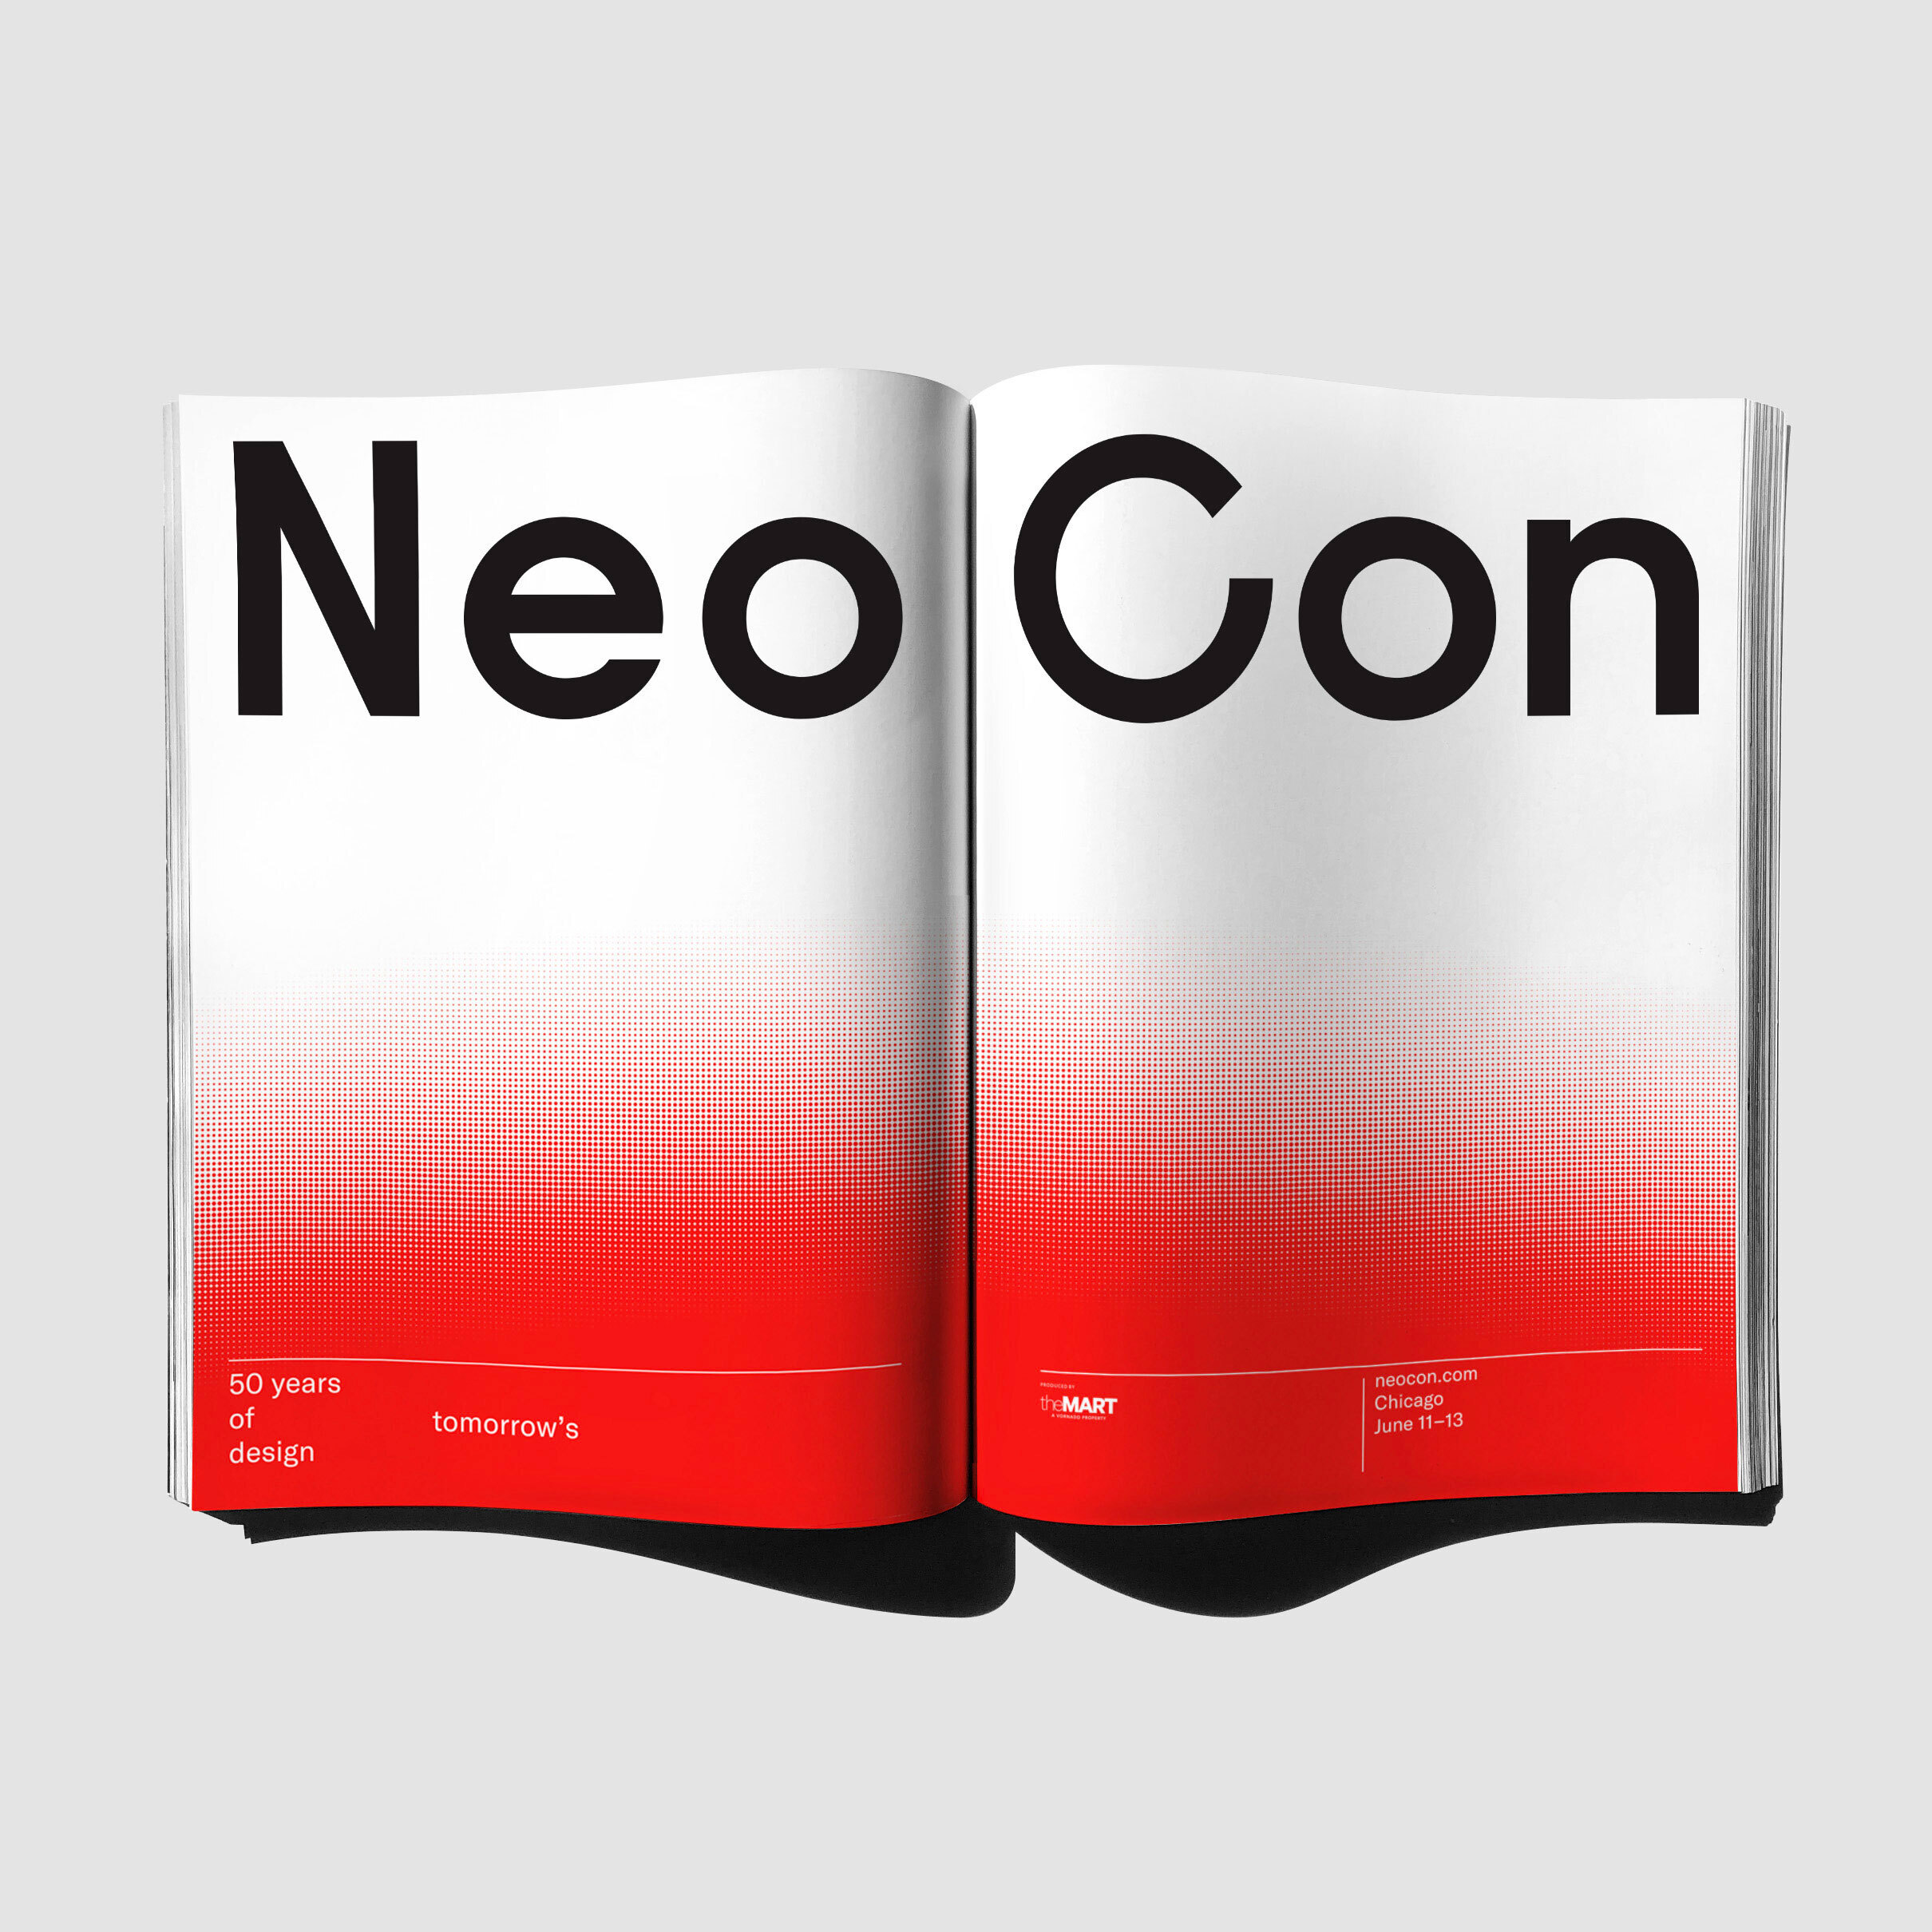 Neocon 2018 ad square